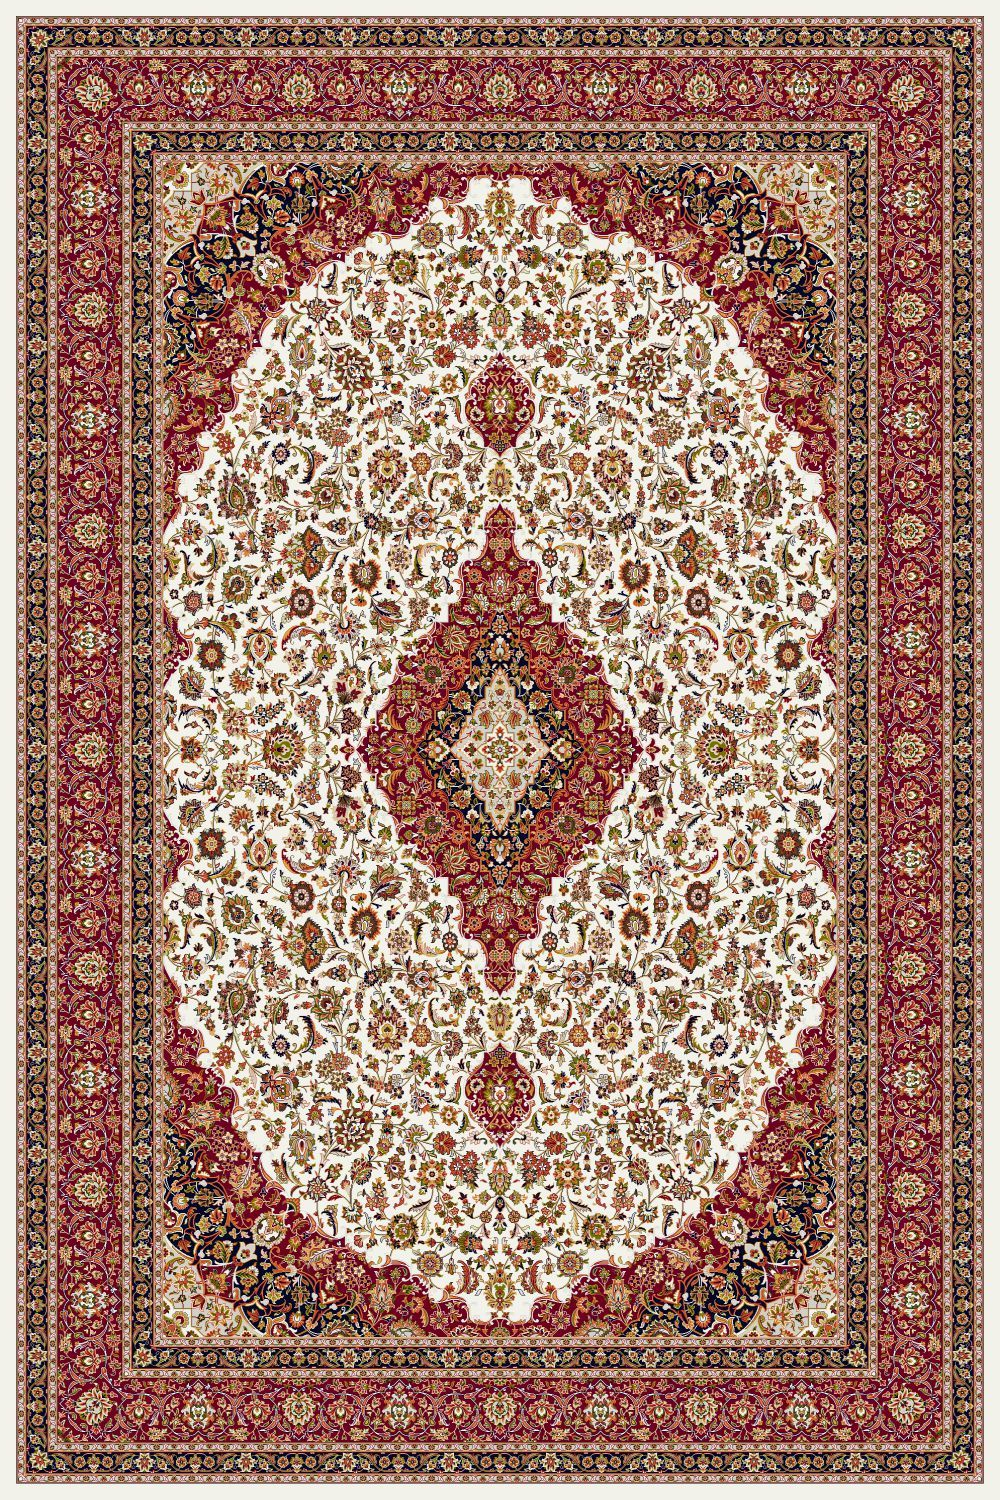 Area Rugs - Persian Treasures - Kashan - Cream